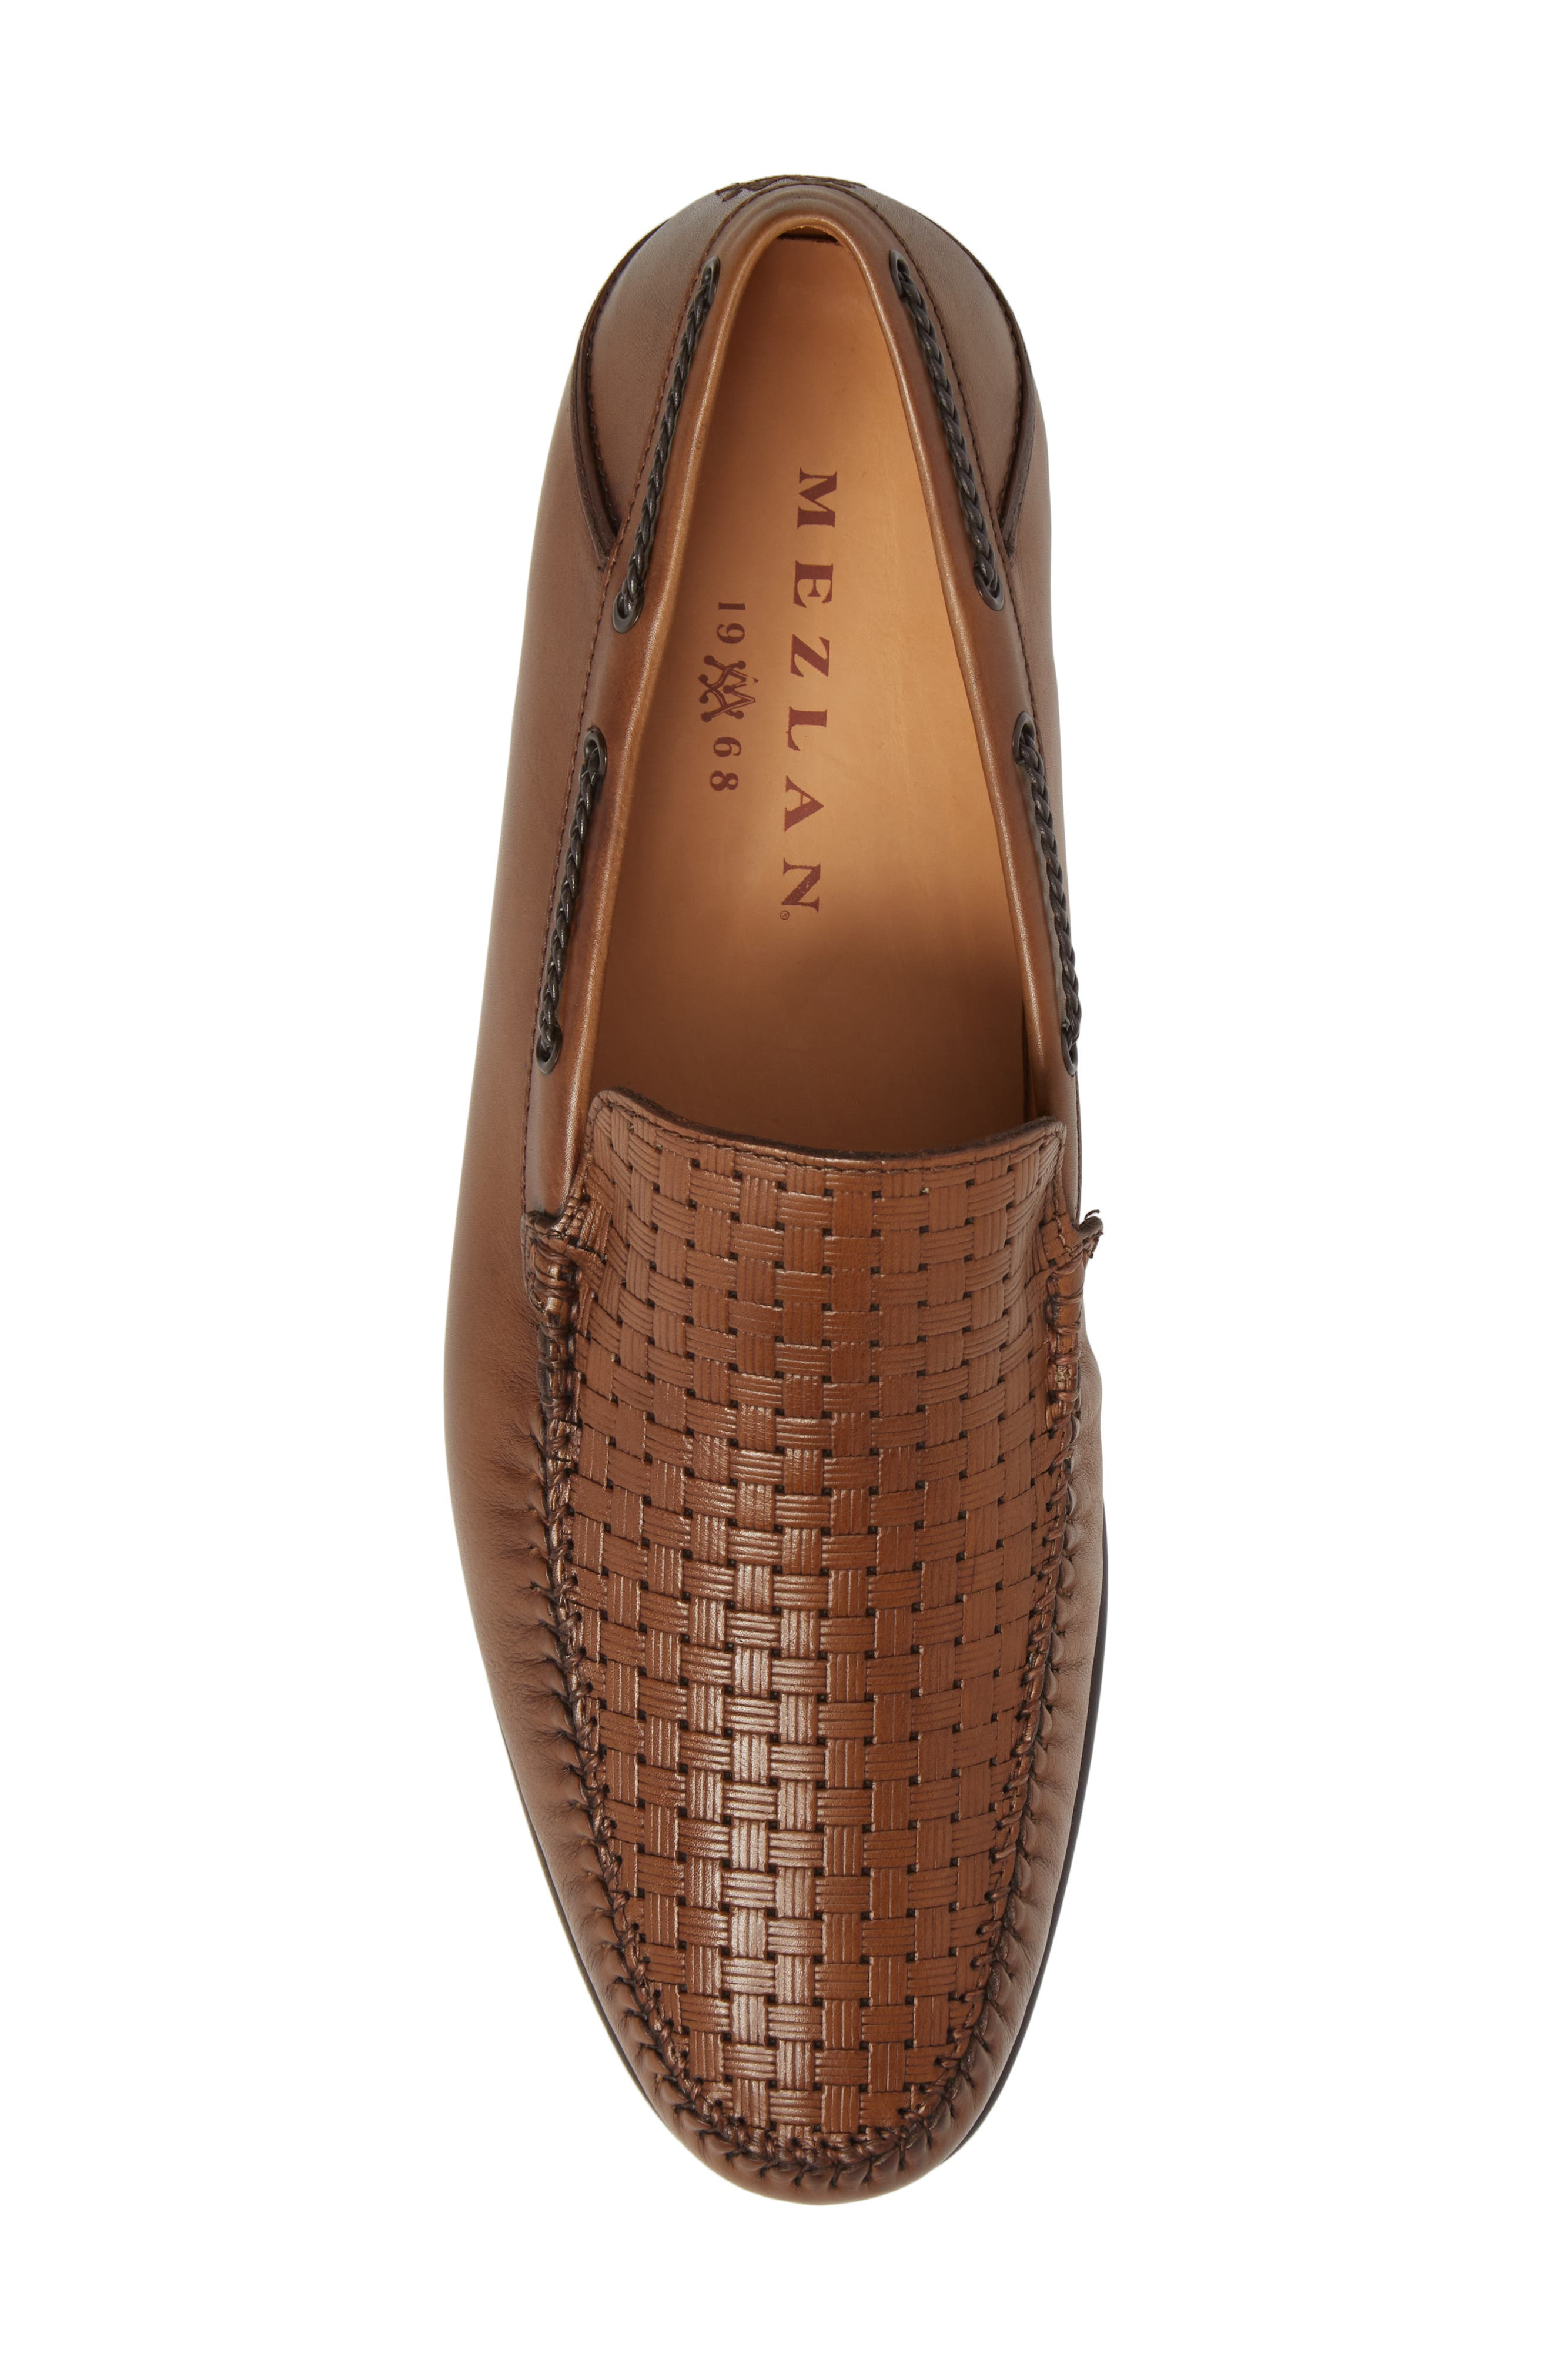 Jano Embossed Moc-Toe Loafer,                             Alternate thumbnail 5, color,                             Cognac Leather